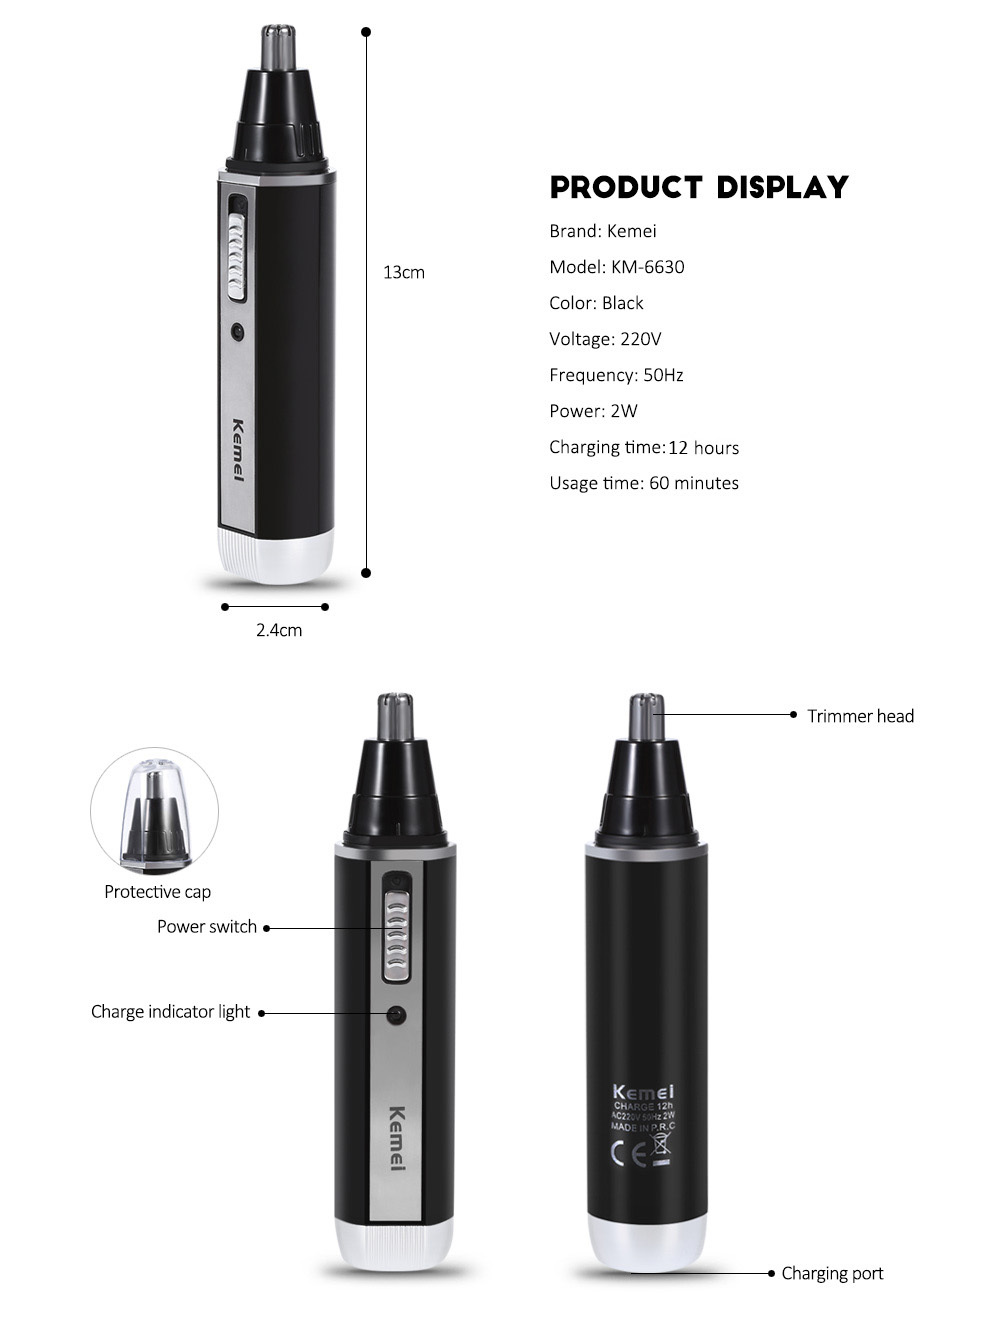 Kemei KM - 6630 4 in 1 Nose Hair Beard Eyebrow Rechargeable Electric Trimmer Set